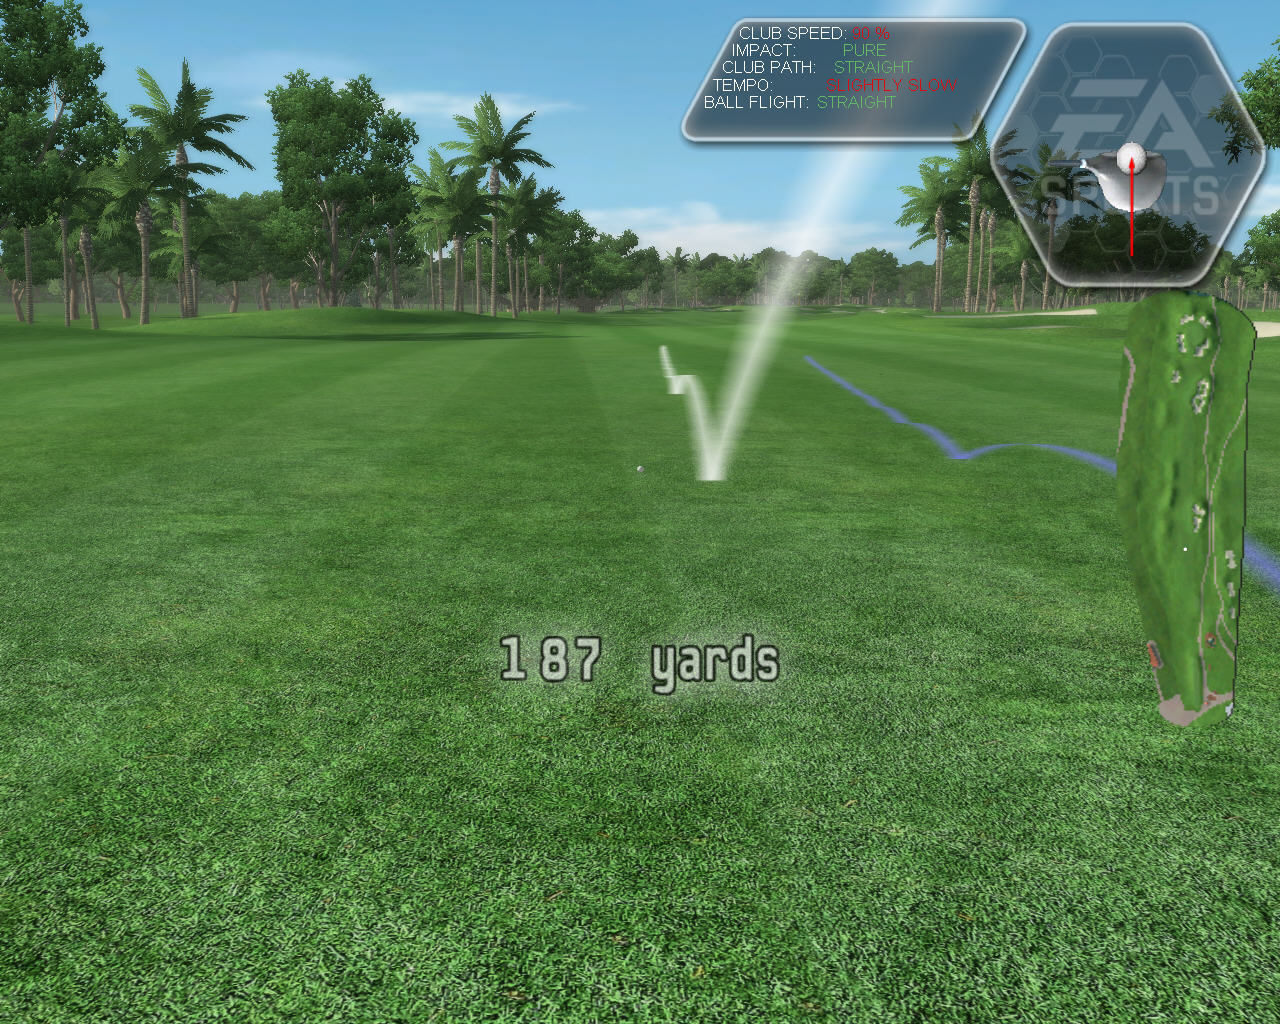 Tiger Woods PGA Tour 08 Windows Blue and white line shows your previous practise shots.